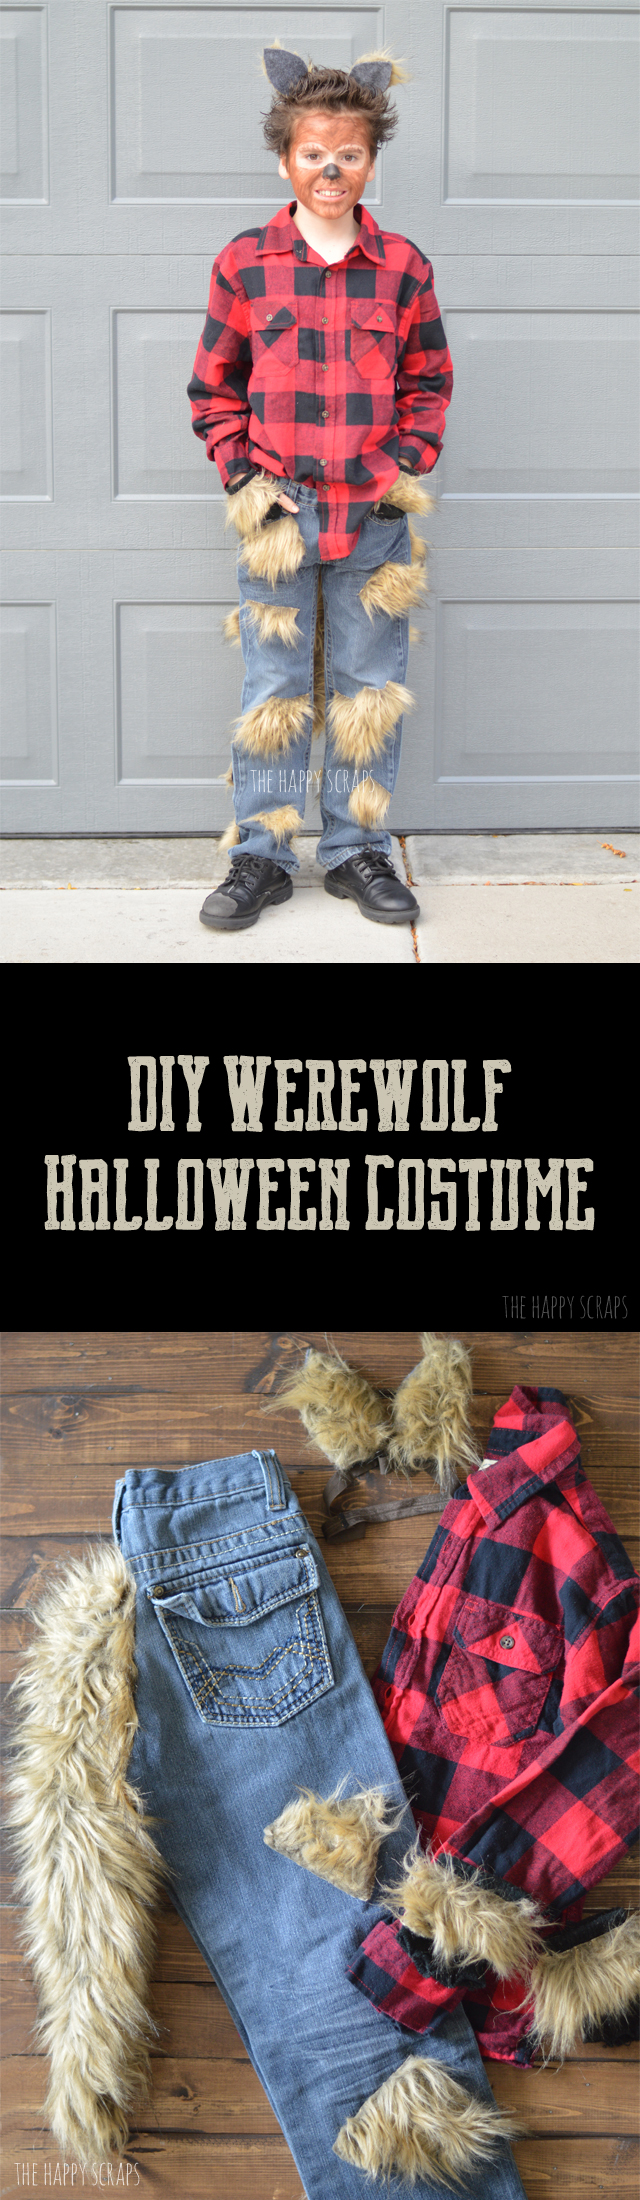 Putting together a DIY Werewolf Halloween Costume doesn't have to be hard. Stop by the blog to see how easy this costume was to make.